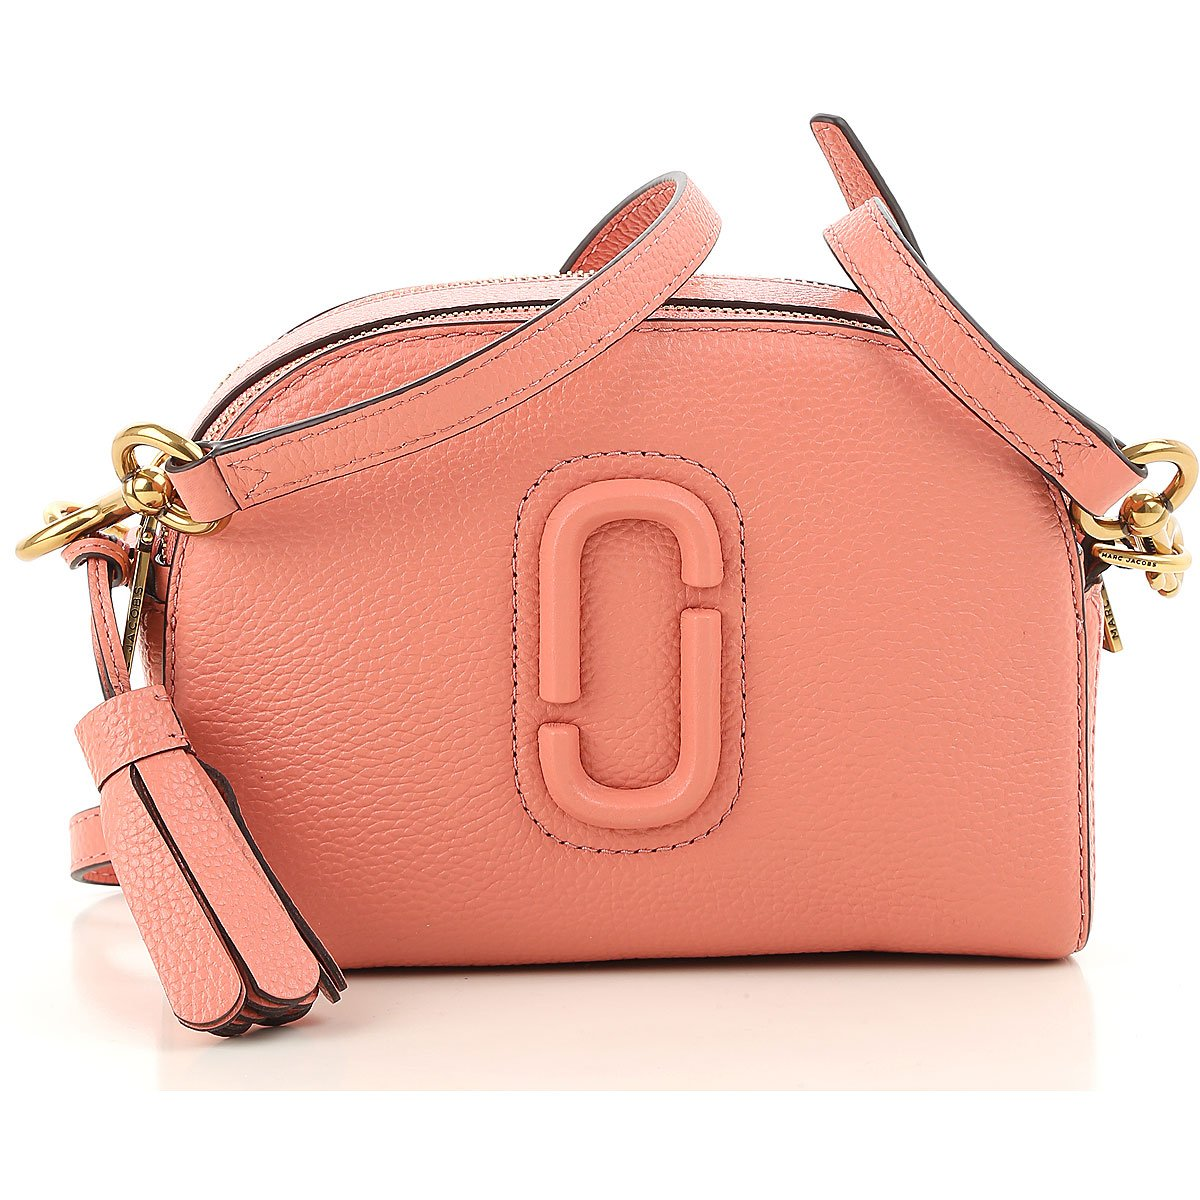 M0009474 653 Crossbody kabelka MARC JACOBS SHUTTER ... bfd3a749ac6